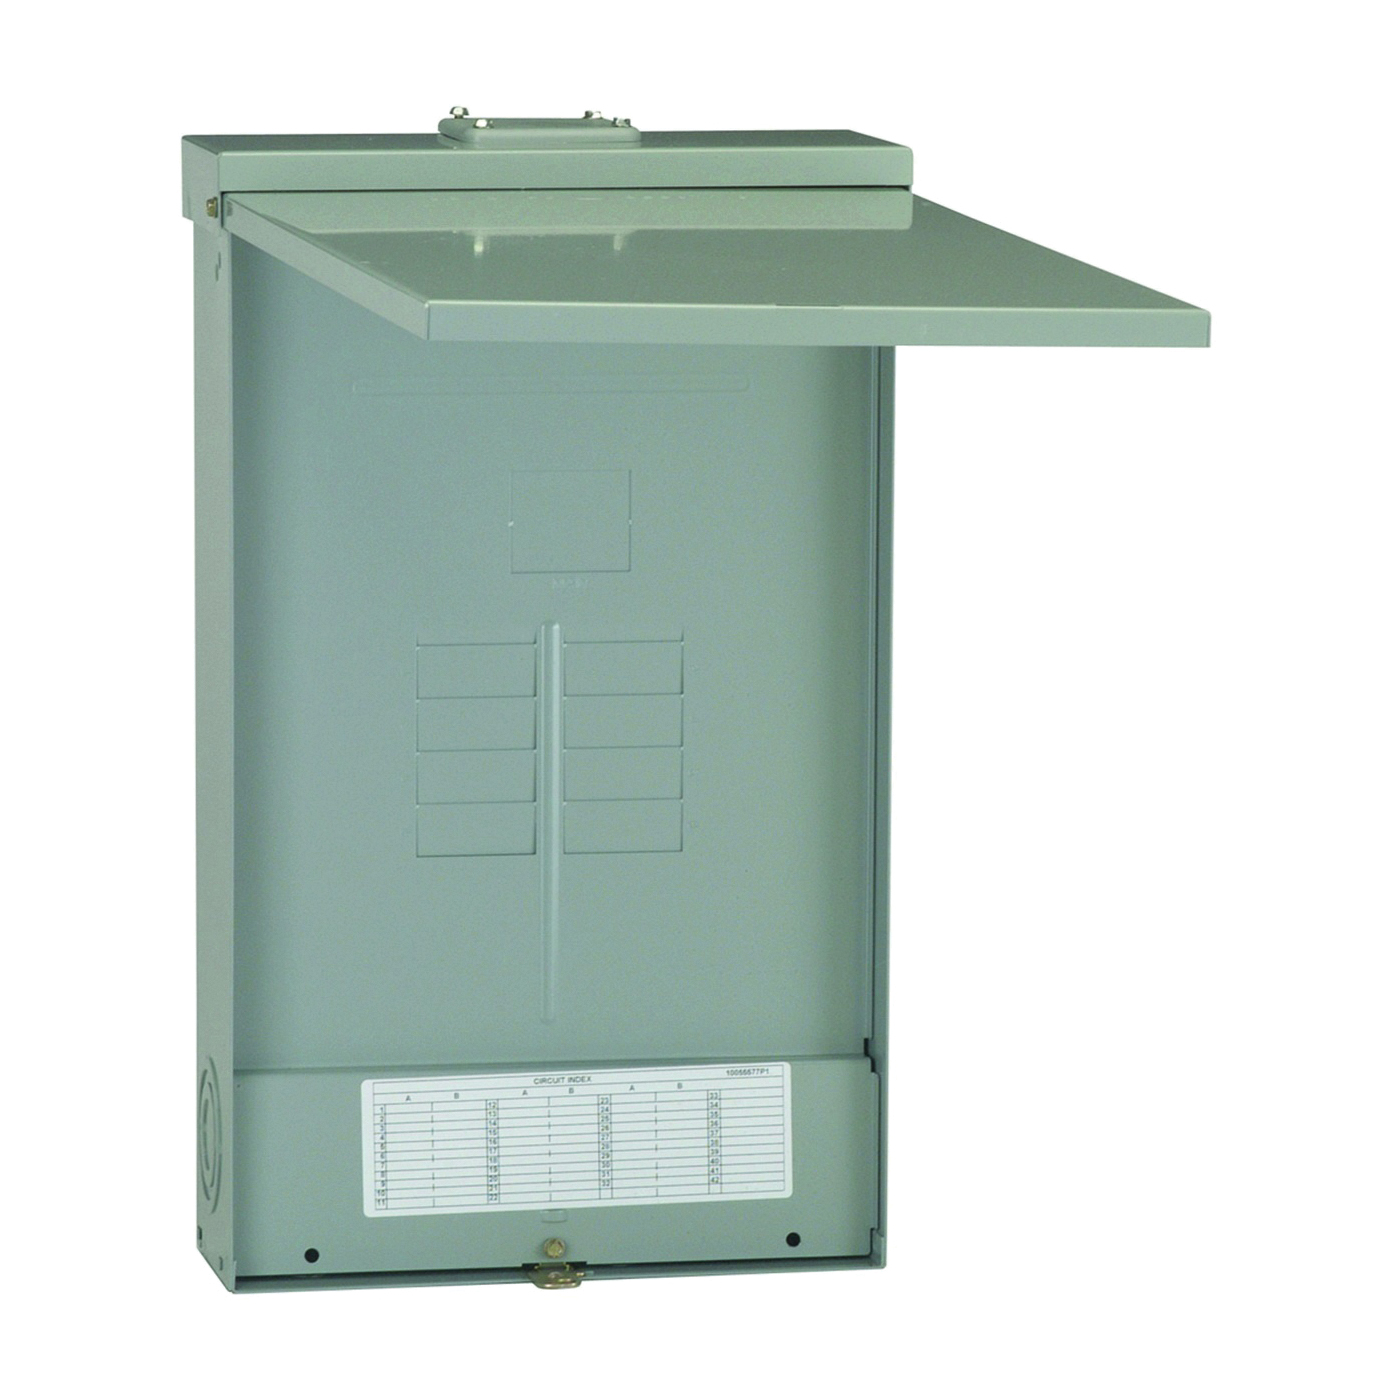 Picture of GE Industrial Solutions PowerMark Gold TLM Series TLM812RCU2P Load Center, 125 A, 8-Space, 12-Circuit, Main Lug